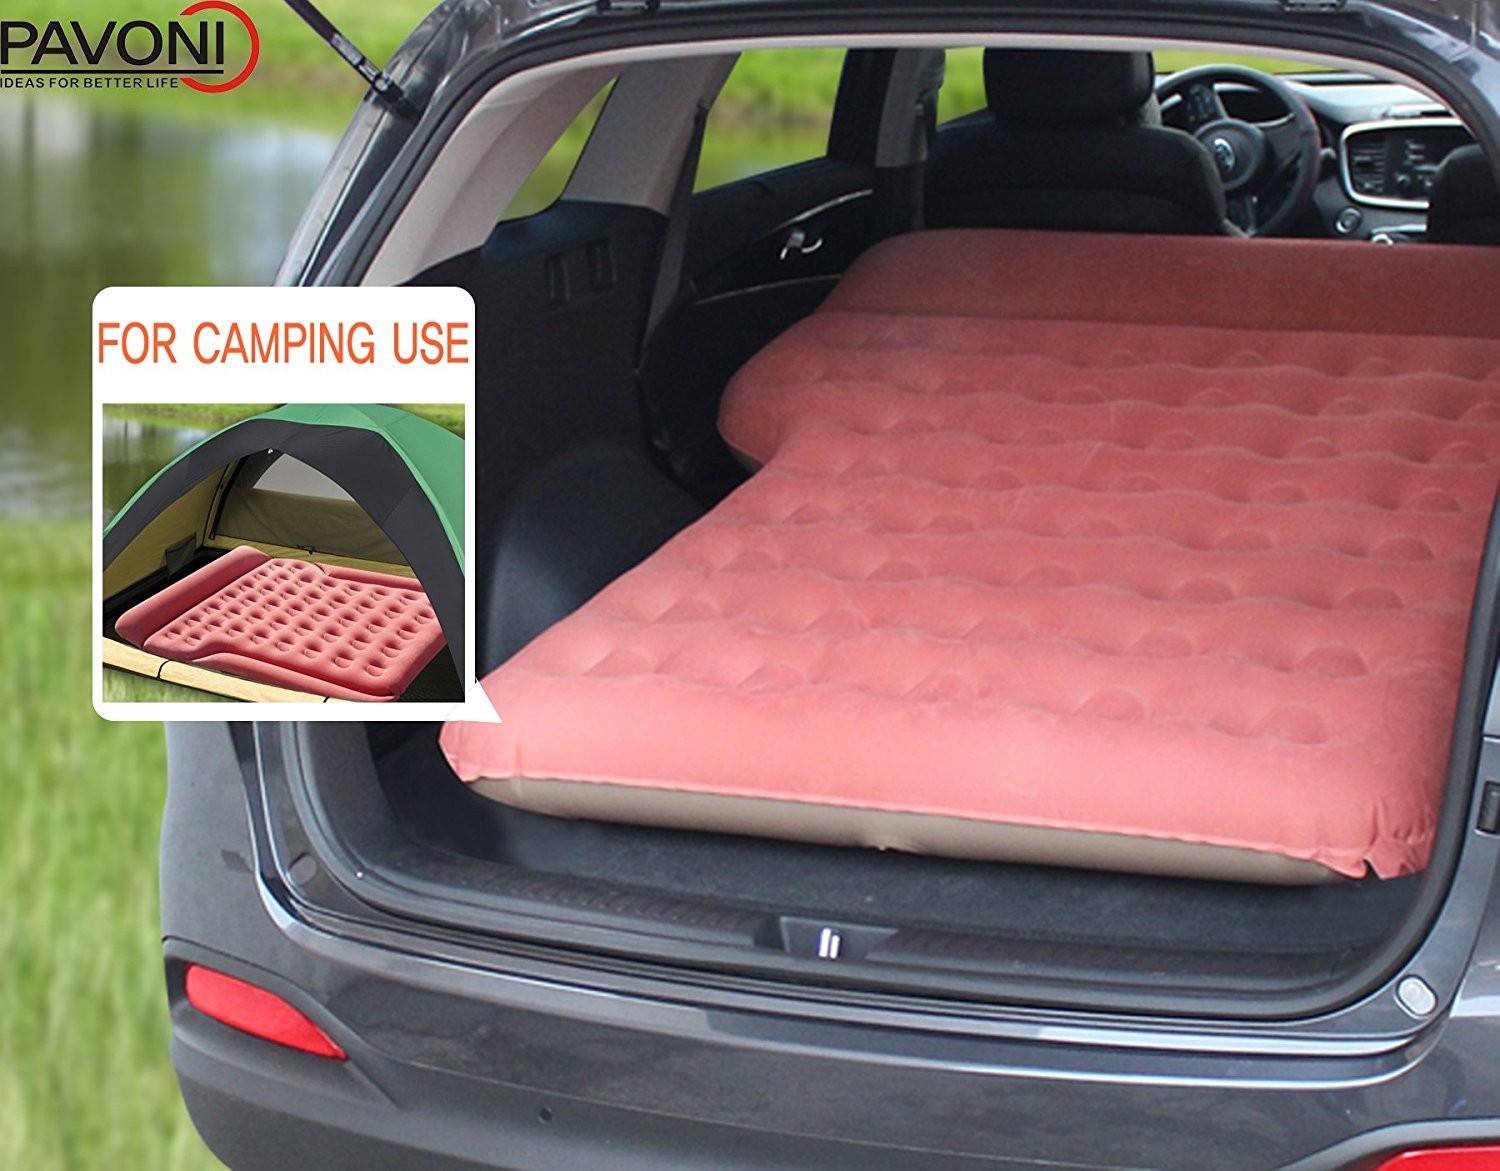 PAVONI SUV Heavy-duty Backseat Car Inflatable Travel Mattress for Camping / Perfect For SUV/RV/Minivan